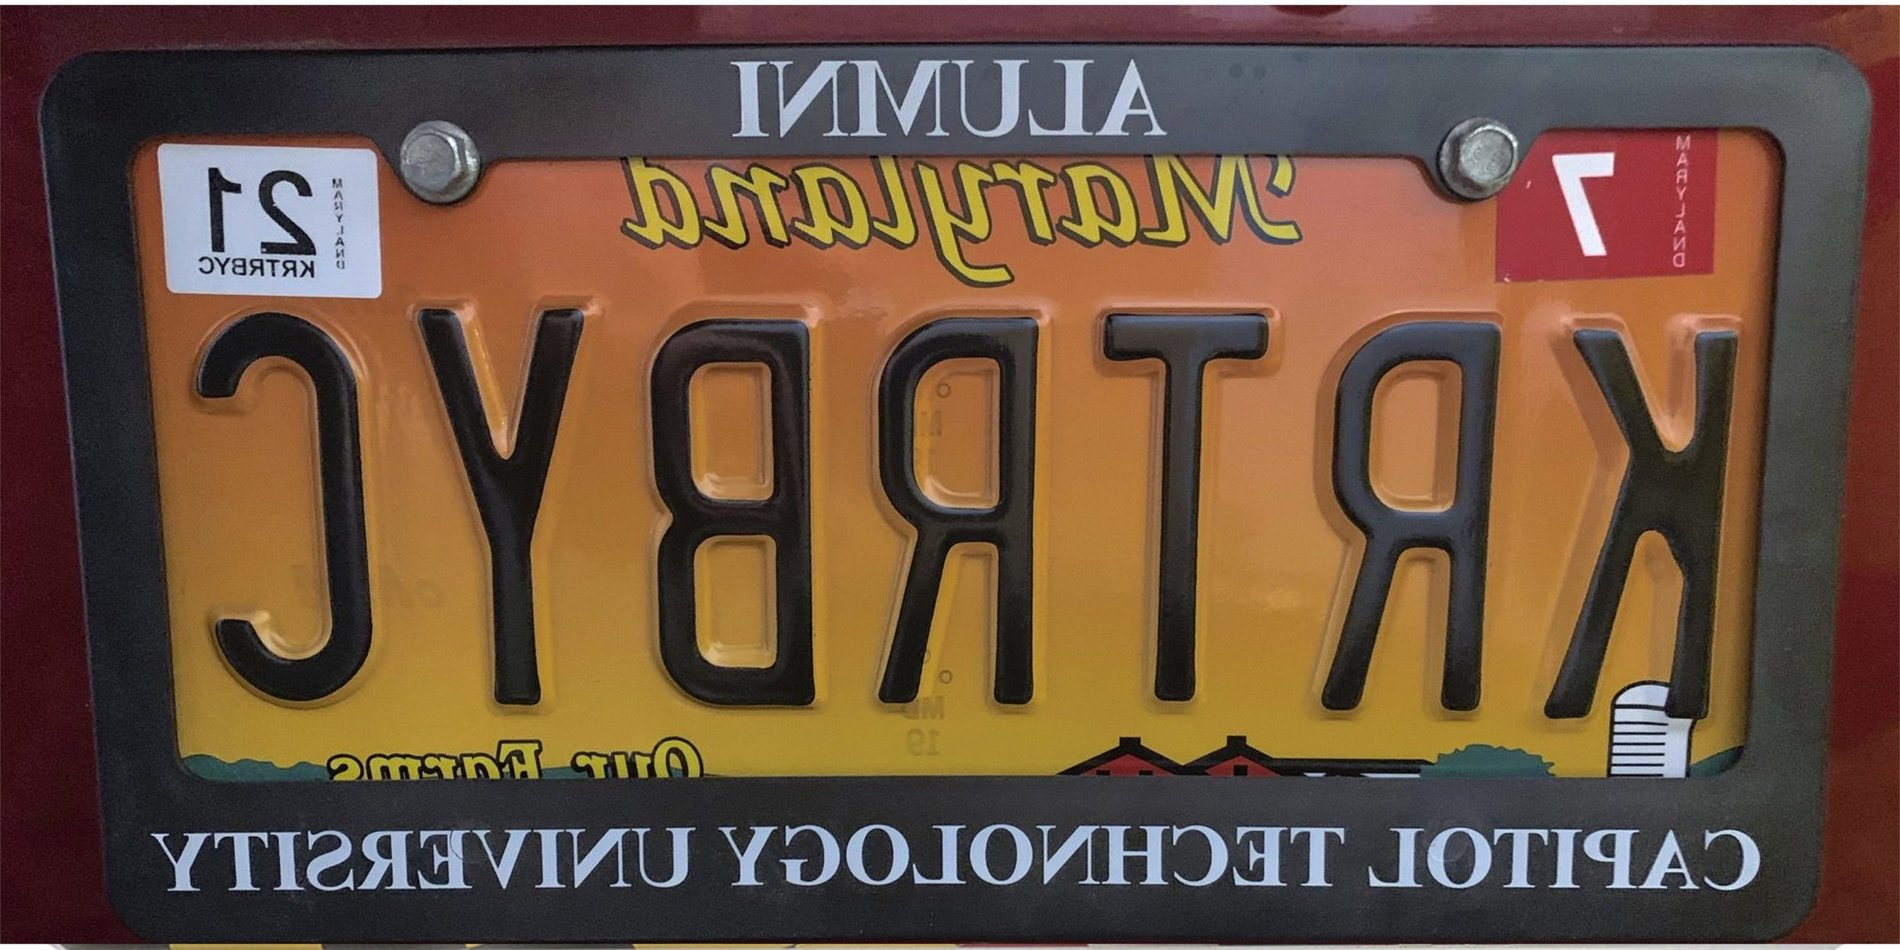 Maryland CT plate.jpg